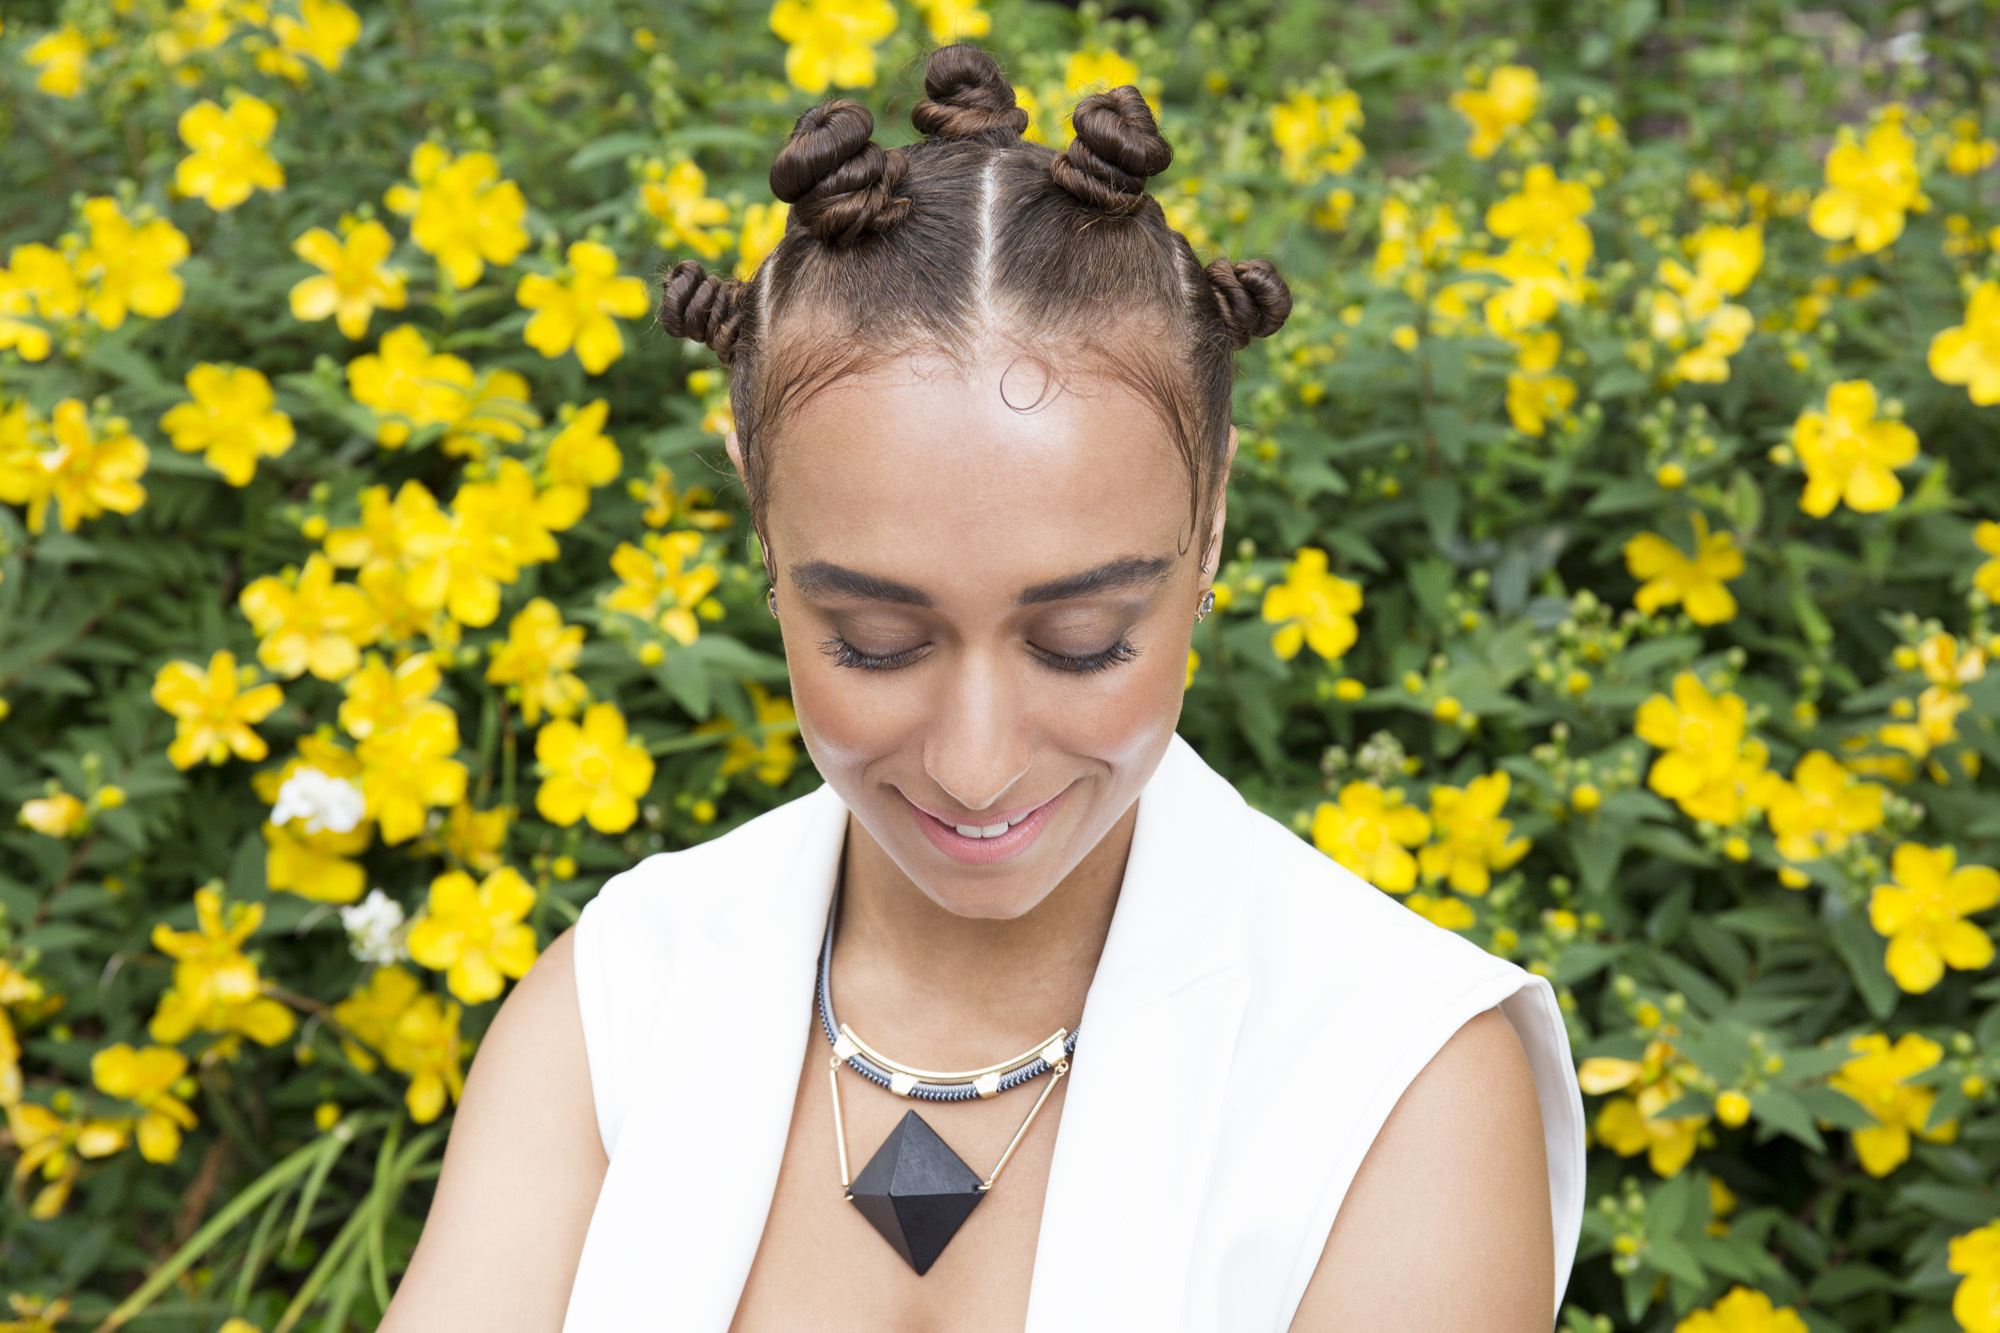 Low manipulation hairstyles: Close up shot of women with bantu knot hairstyle posing in a field of yellow flowers